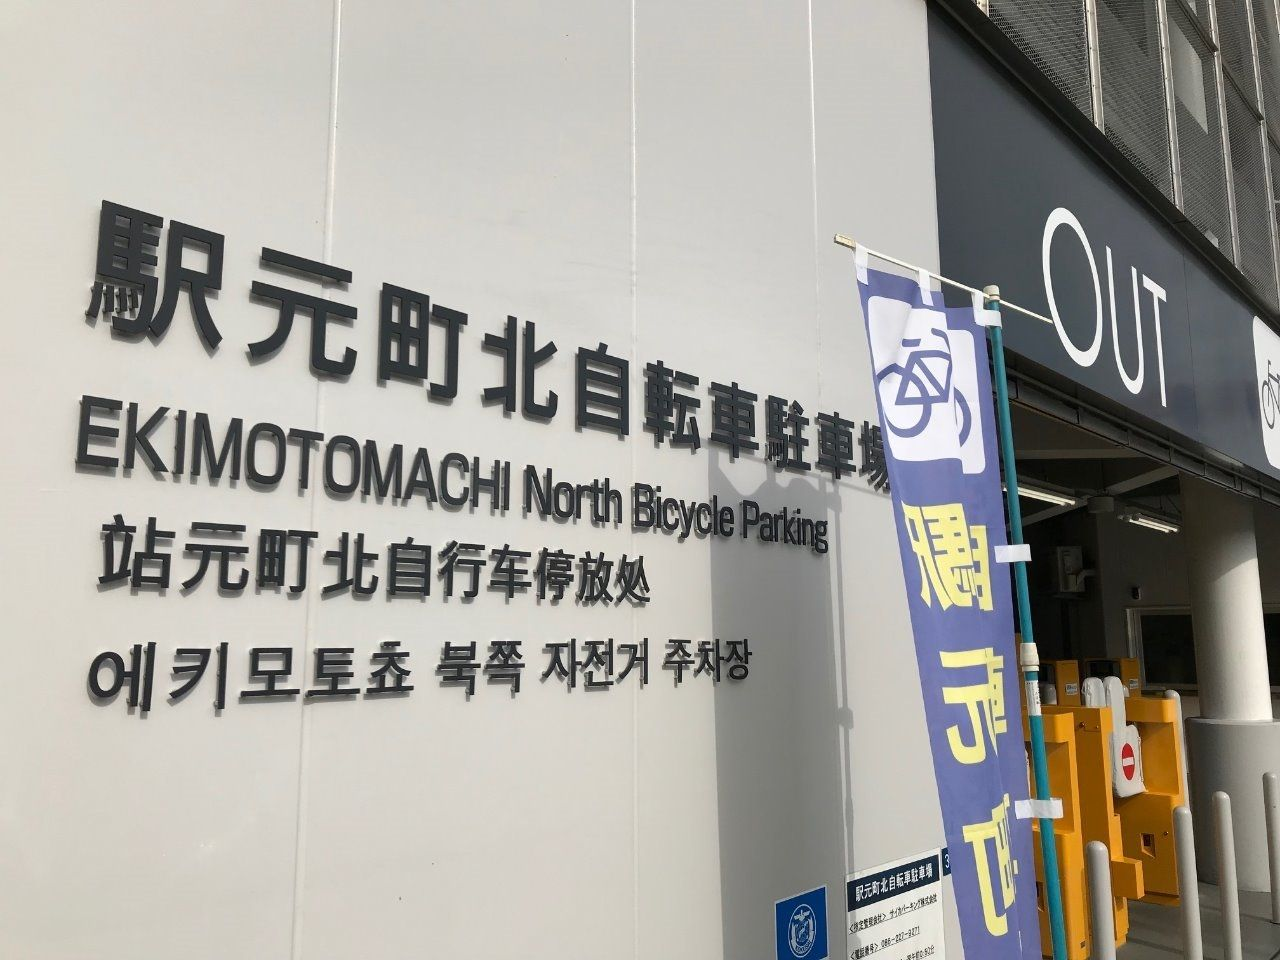 EKIMOTOMACHI North Bicycle Parking 全天候型駐輪場(有料)